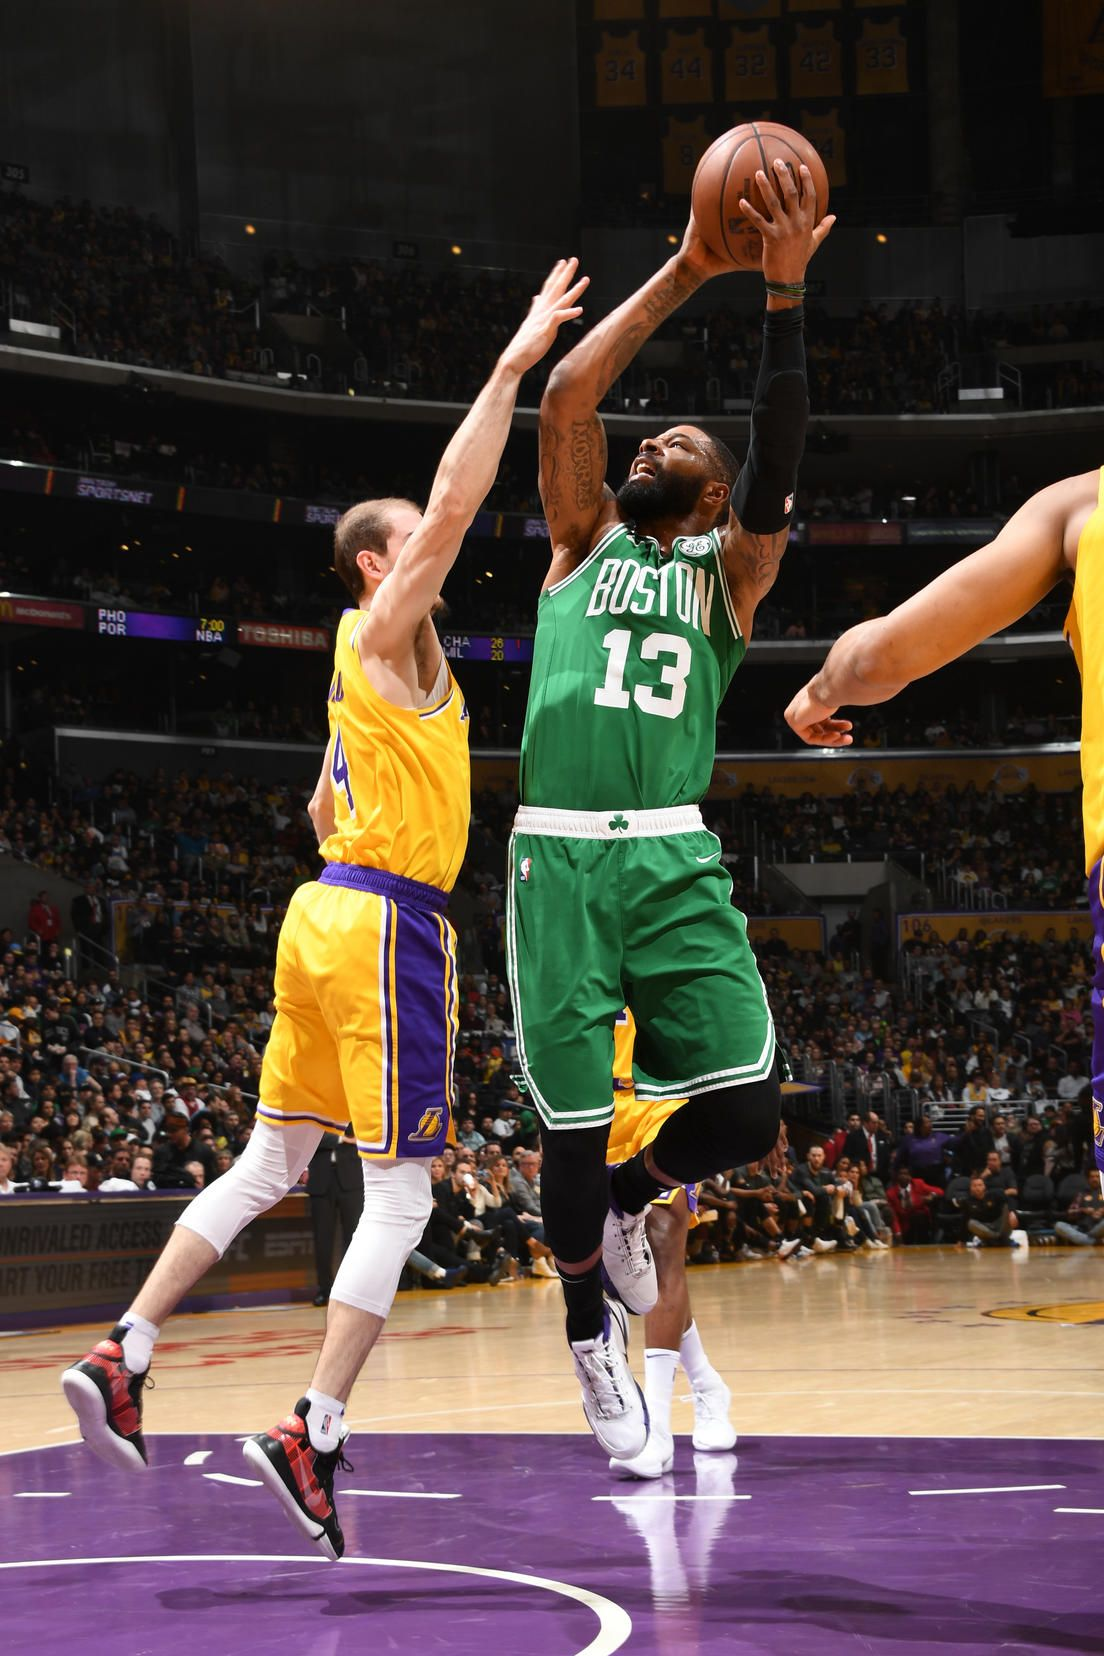 Photos Celtics Vs Lakers Mar 9 2019 Boston Celtics Boston Celtics Celtic Lakers